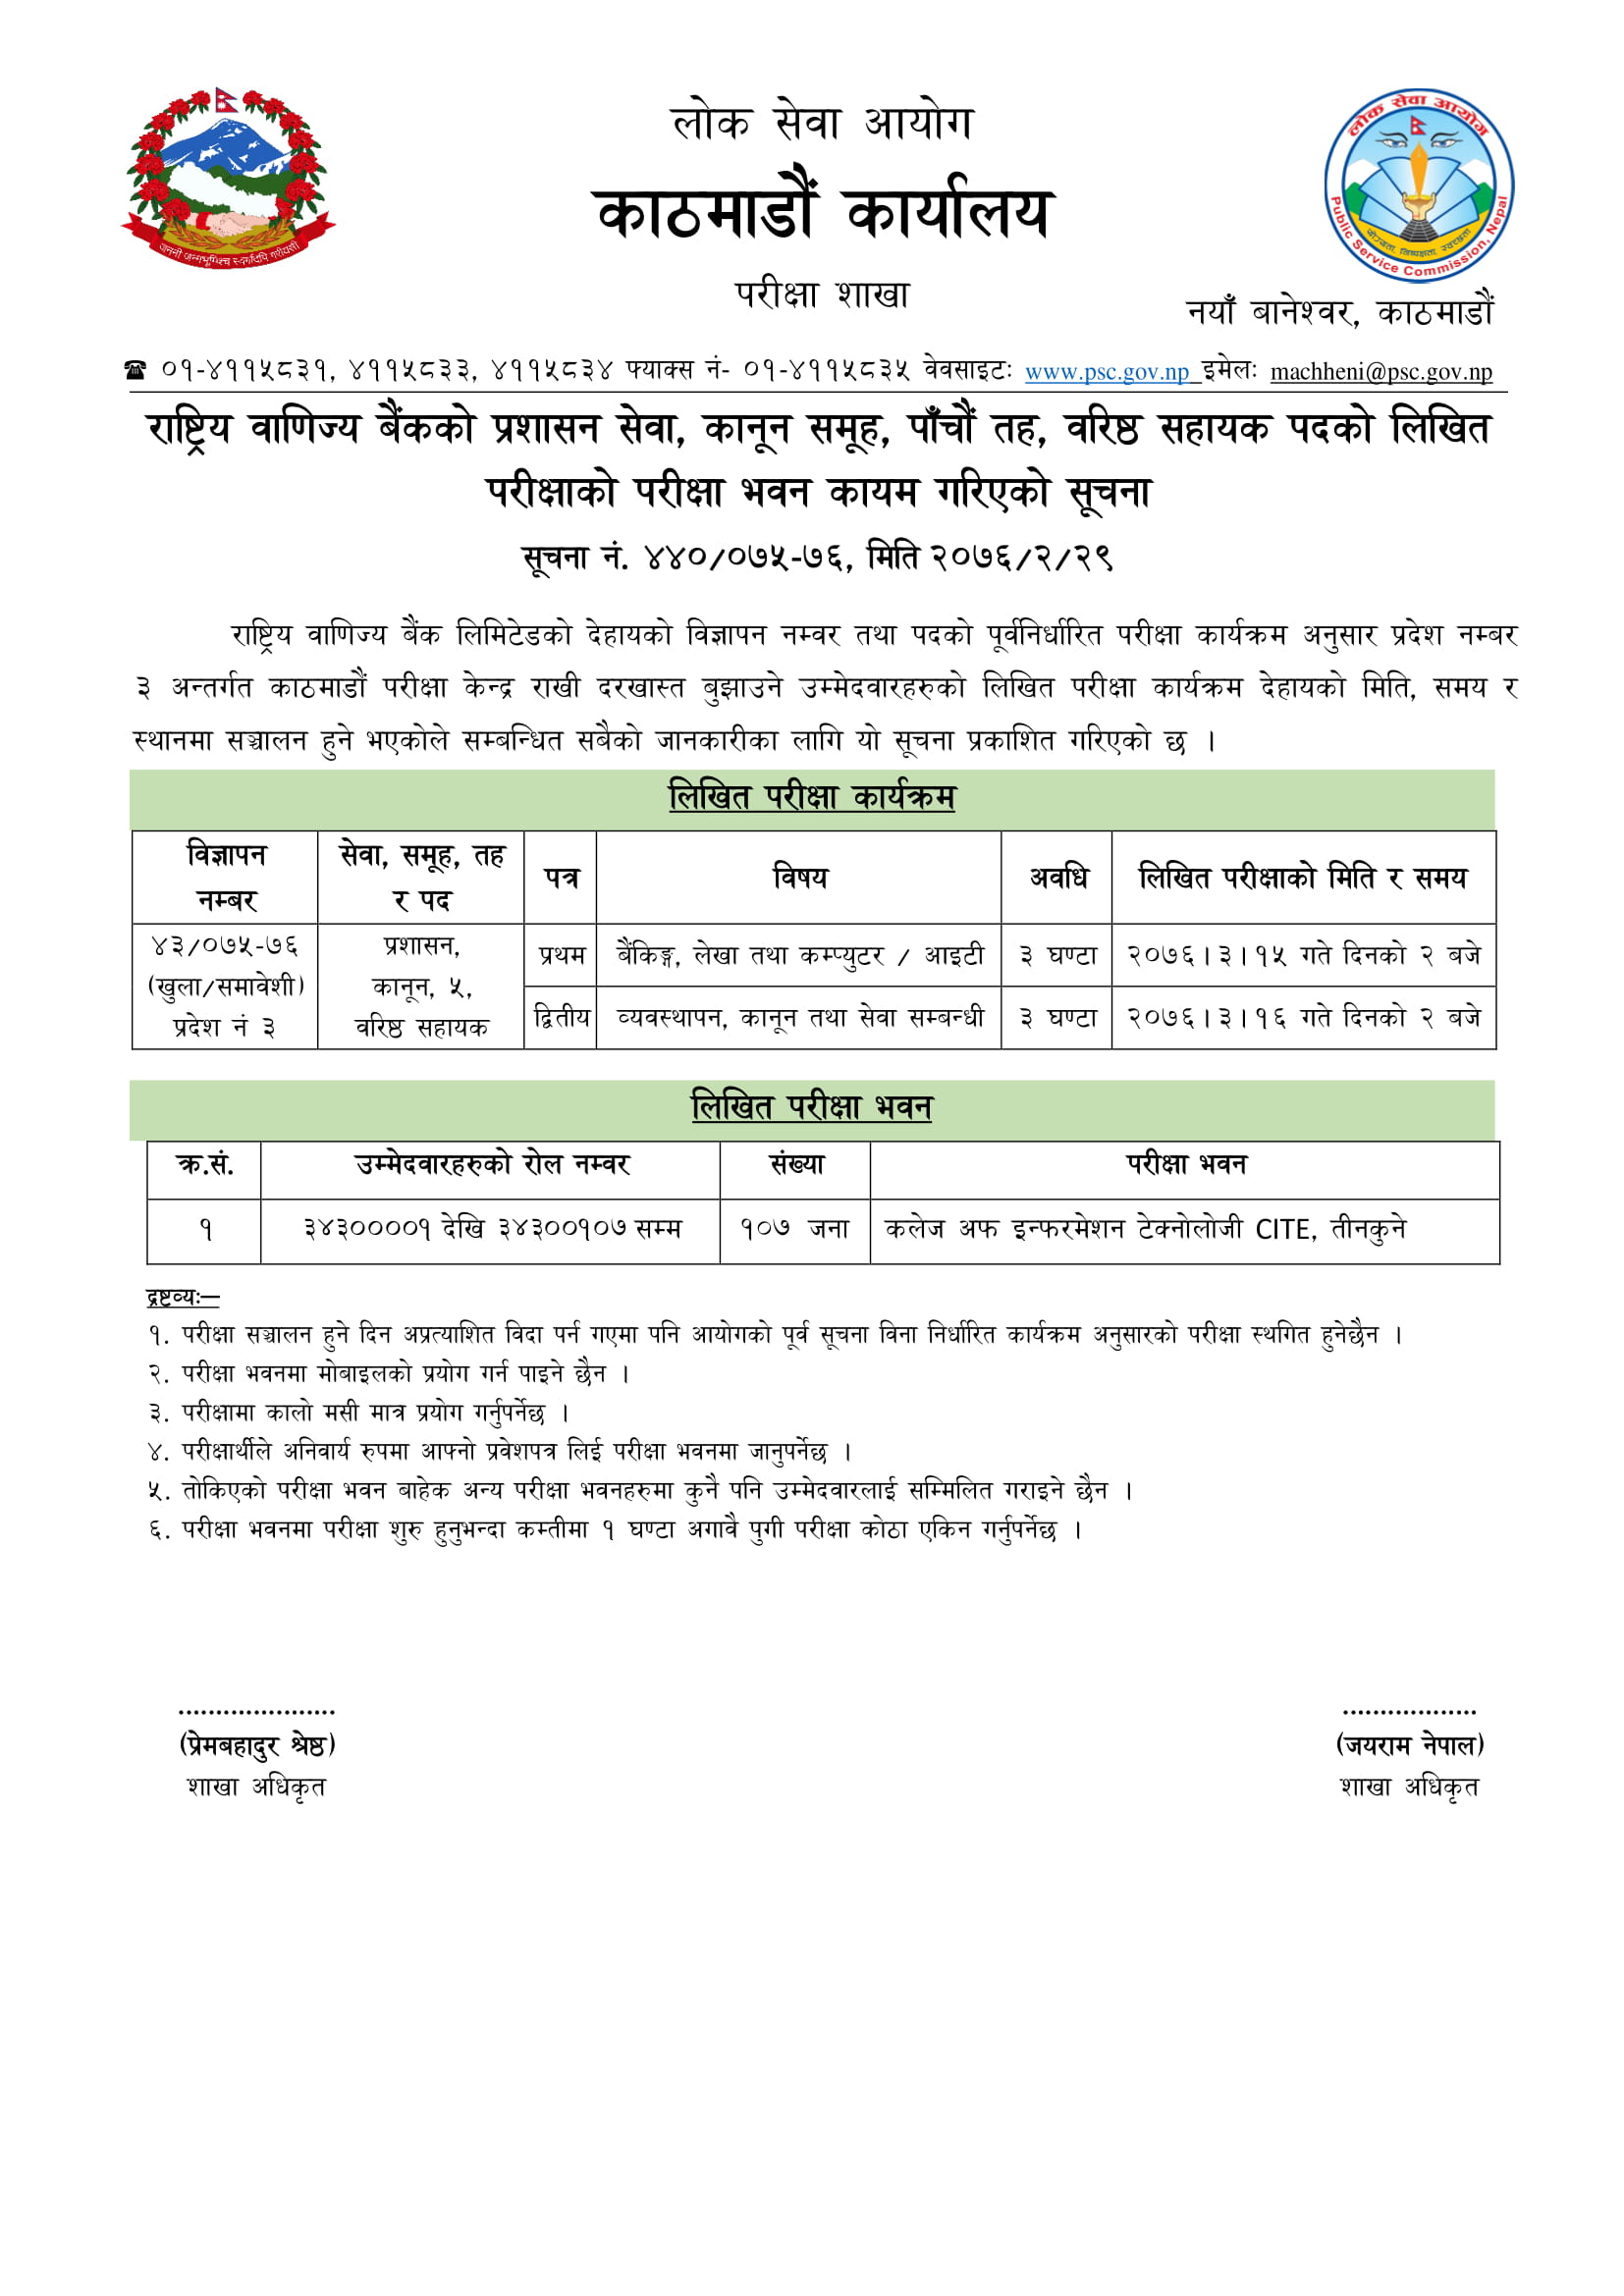 Rastriya Banijya Bank, Sahayak padko Exam Cetner, RBB exam center, Exam center RBB, Rastriya Banijya Bank Exam Center, exam center RBB 2076, RBB Nepal Exam center, Rastriya Banijya Bank Exam Center Assistant 4th Level, Rastriya Banijya Bank Exam Center Assistant, Rastriya Banijya Bank Exam center 4th Level, Exam center 4th Level, Exam center Assistant, RBB Exam center 4th Level, Exam center Assistant,